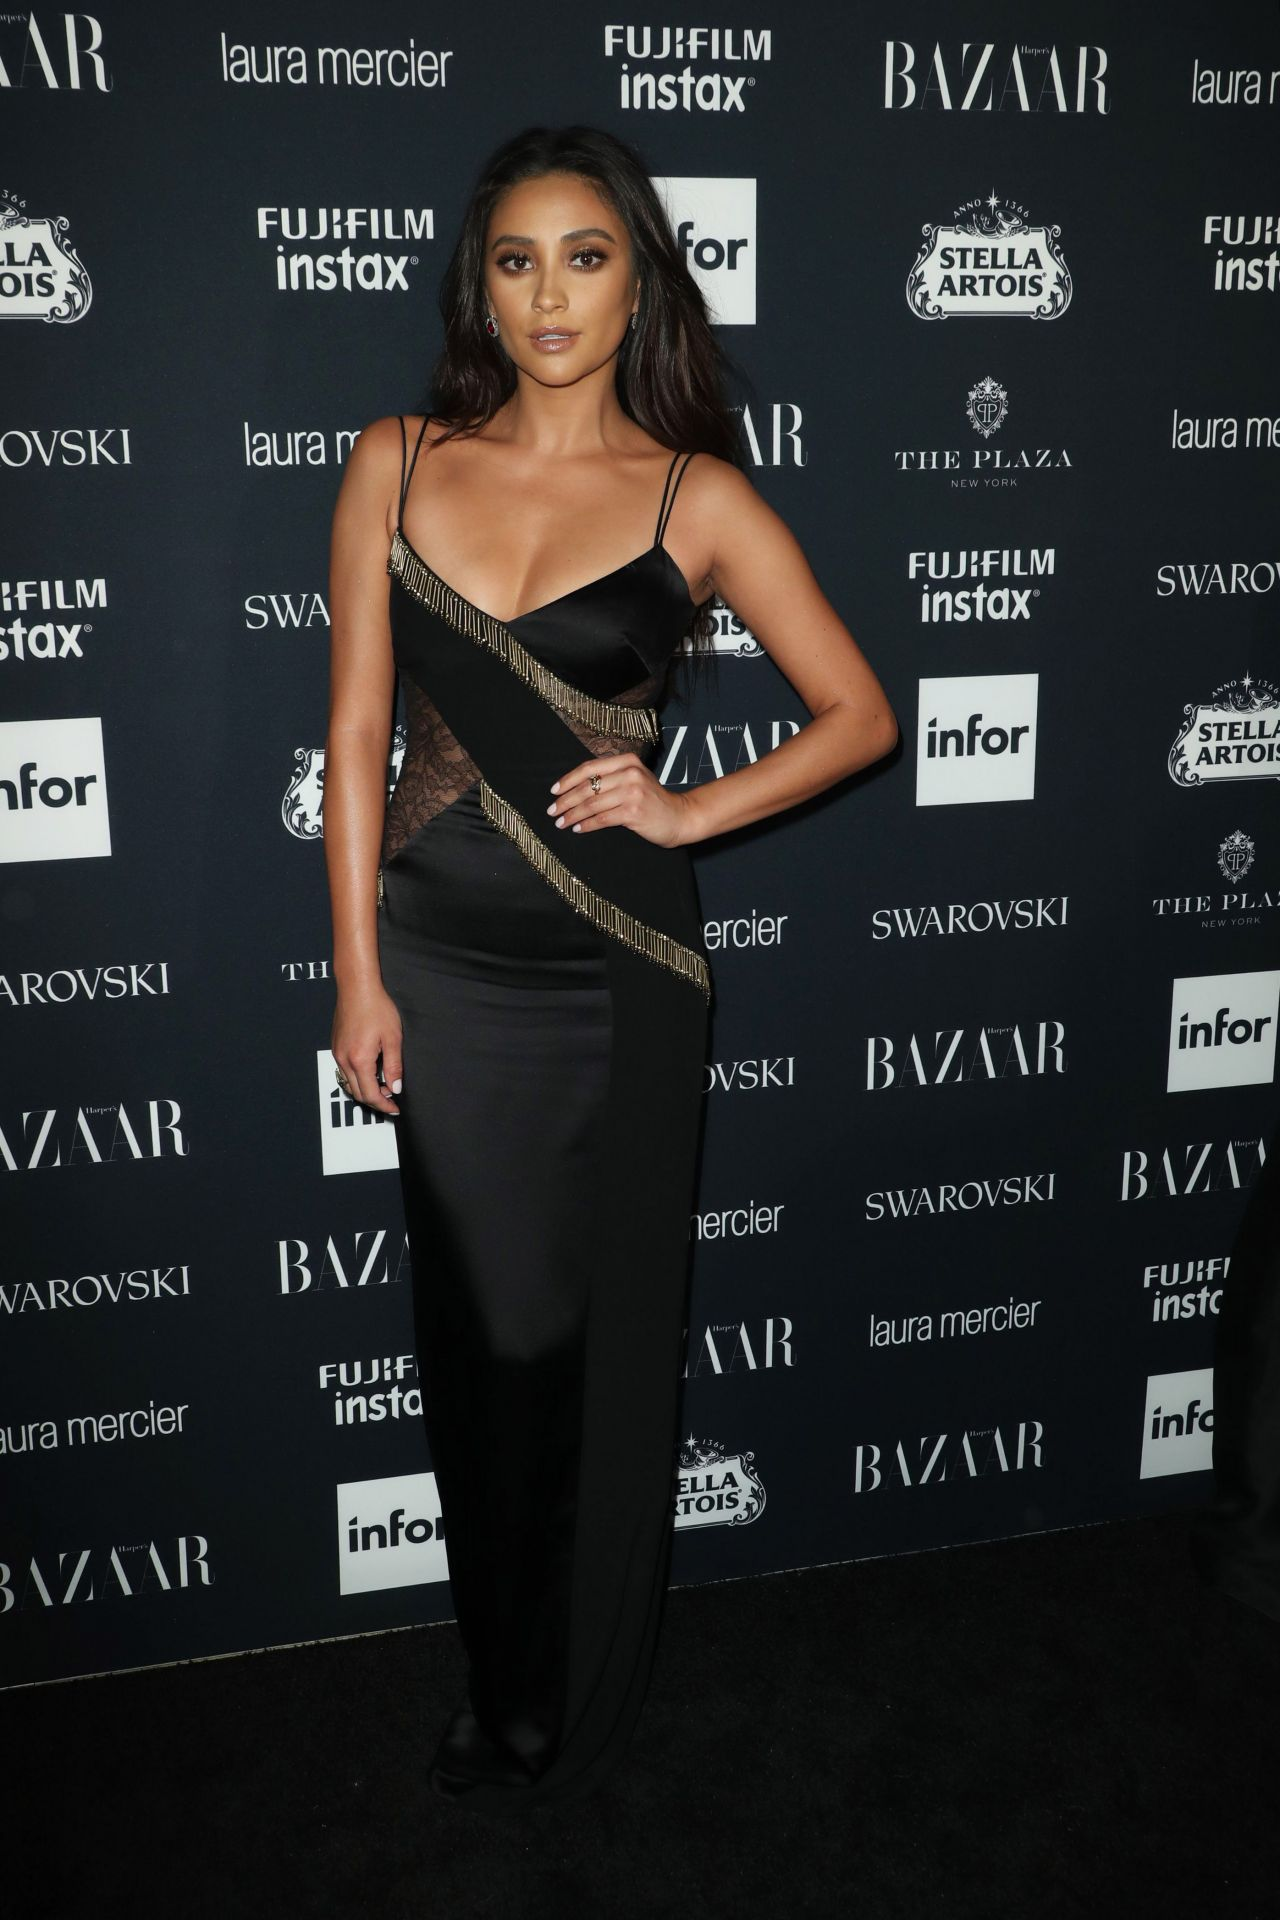 http://celebmafia.com/wp-content/uploads/2017/09/shay-mitchell-harper-s-bazaar-icons-party-at-nyfw-09-08-2017-0.jpg